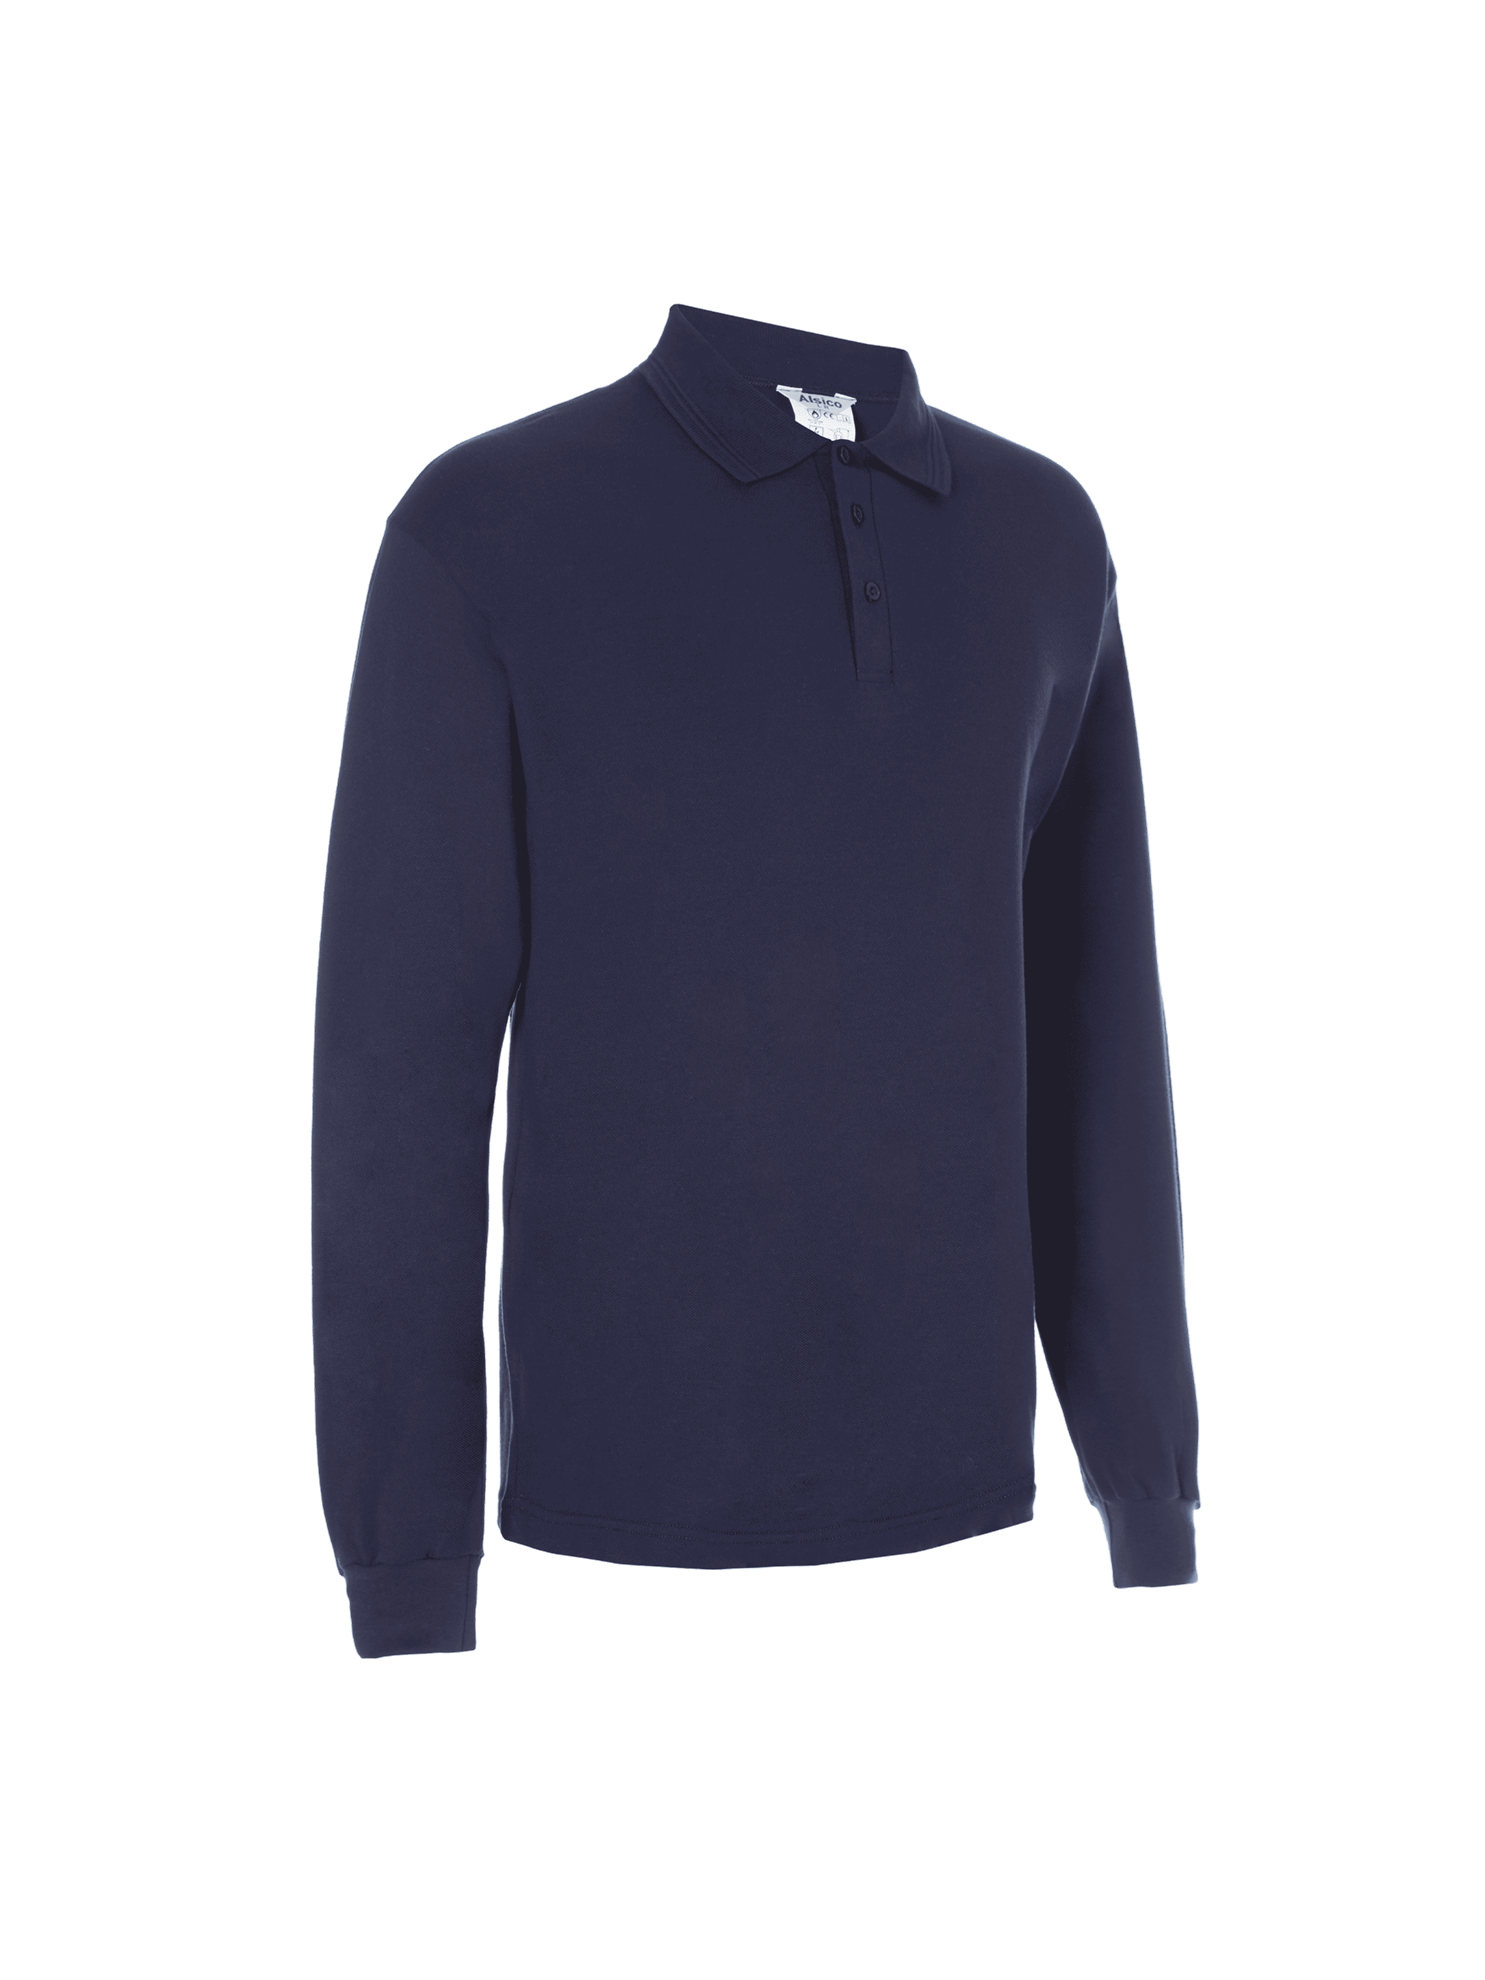 Picture of Protal® Long Sleeve Polo Shirt - Navy